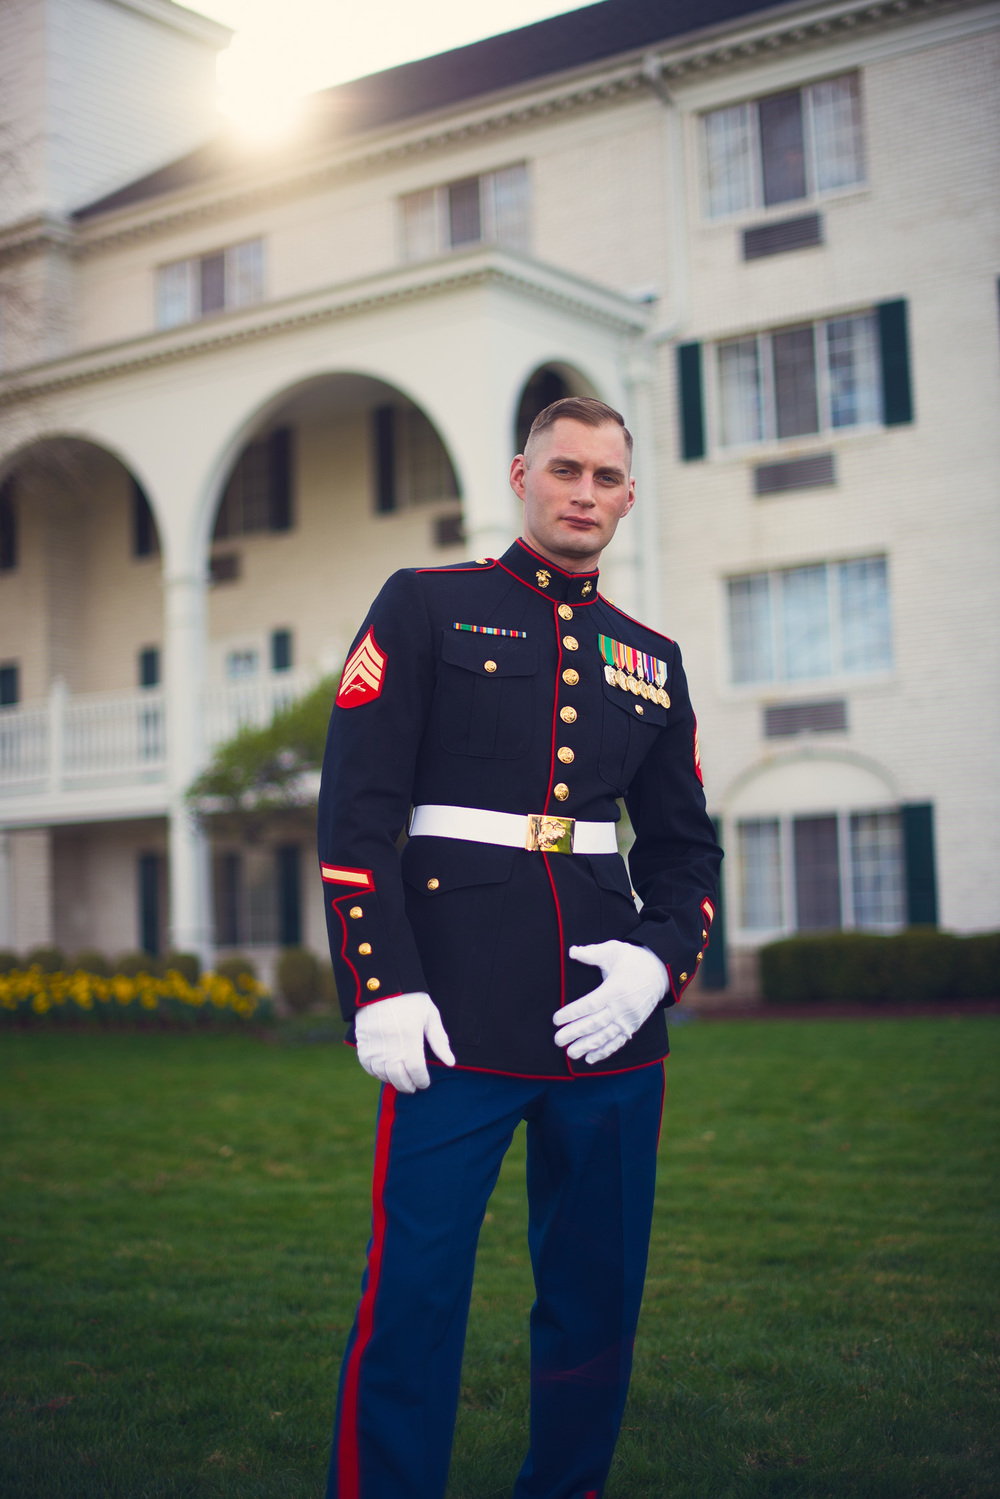 MIlitary garbed Groom stands in fron of hotel with sun flare THPHOTO